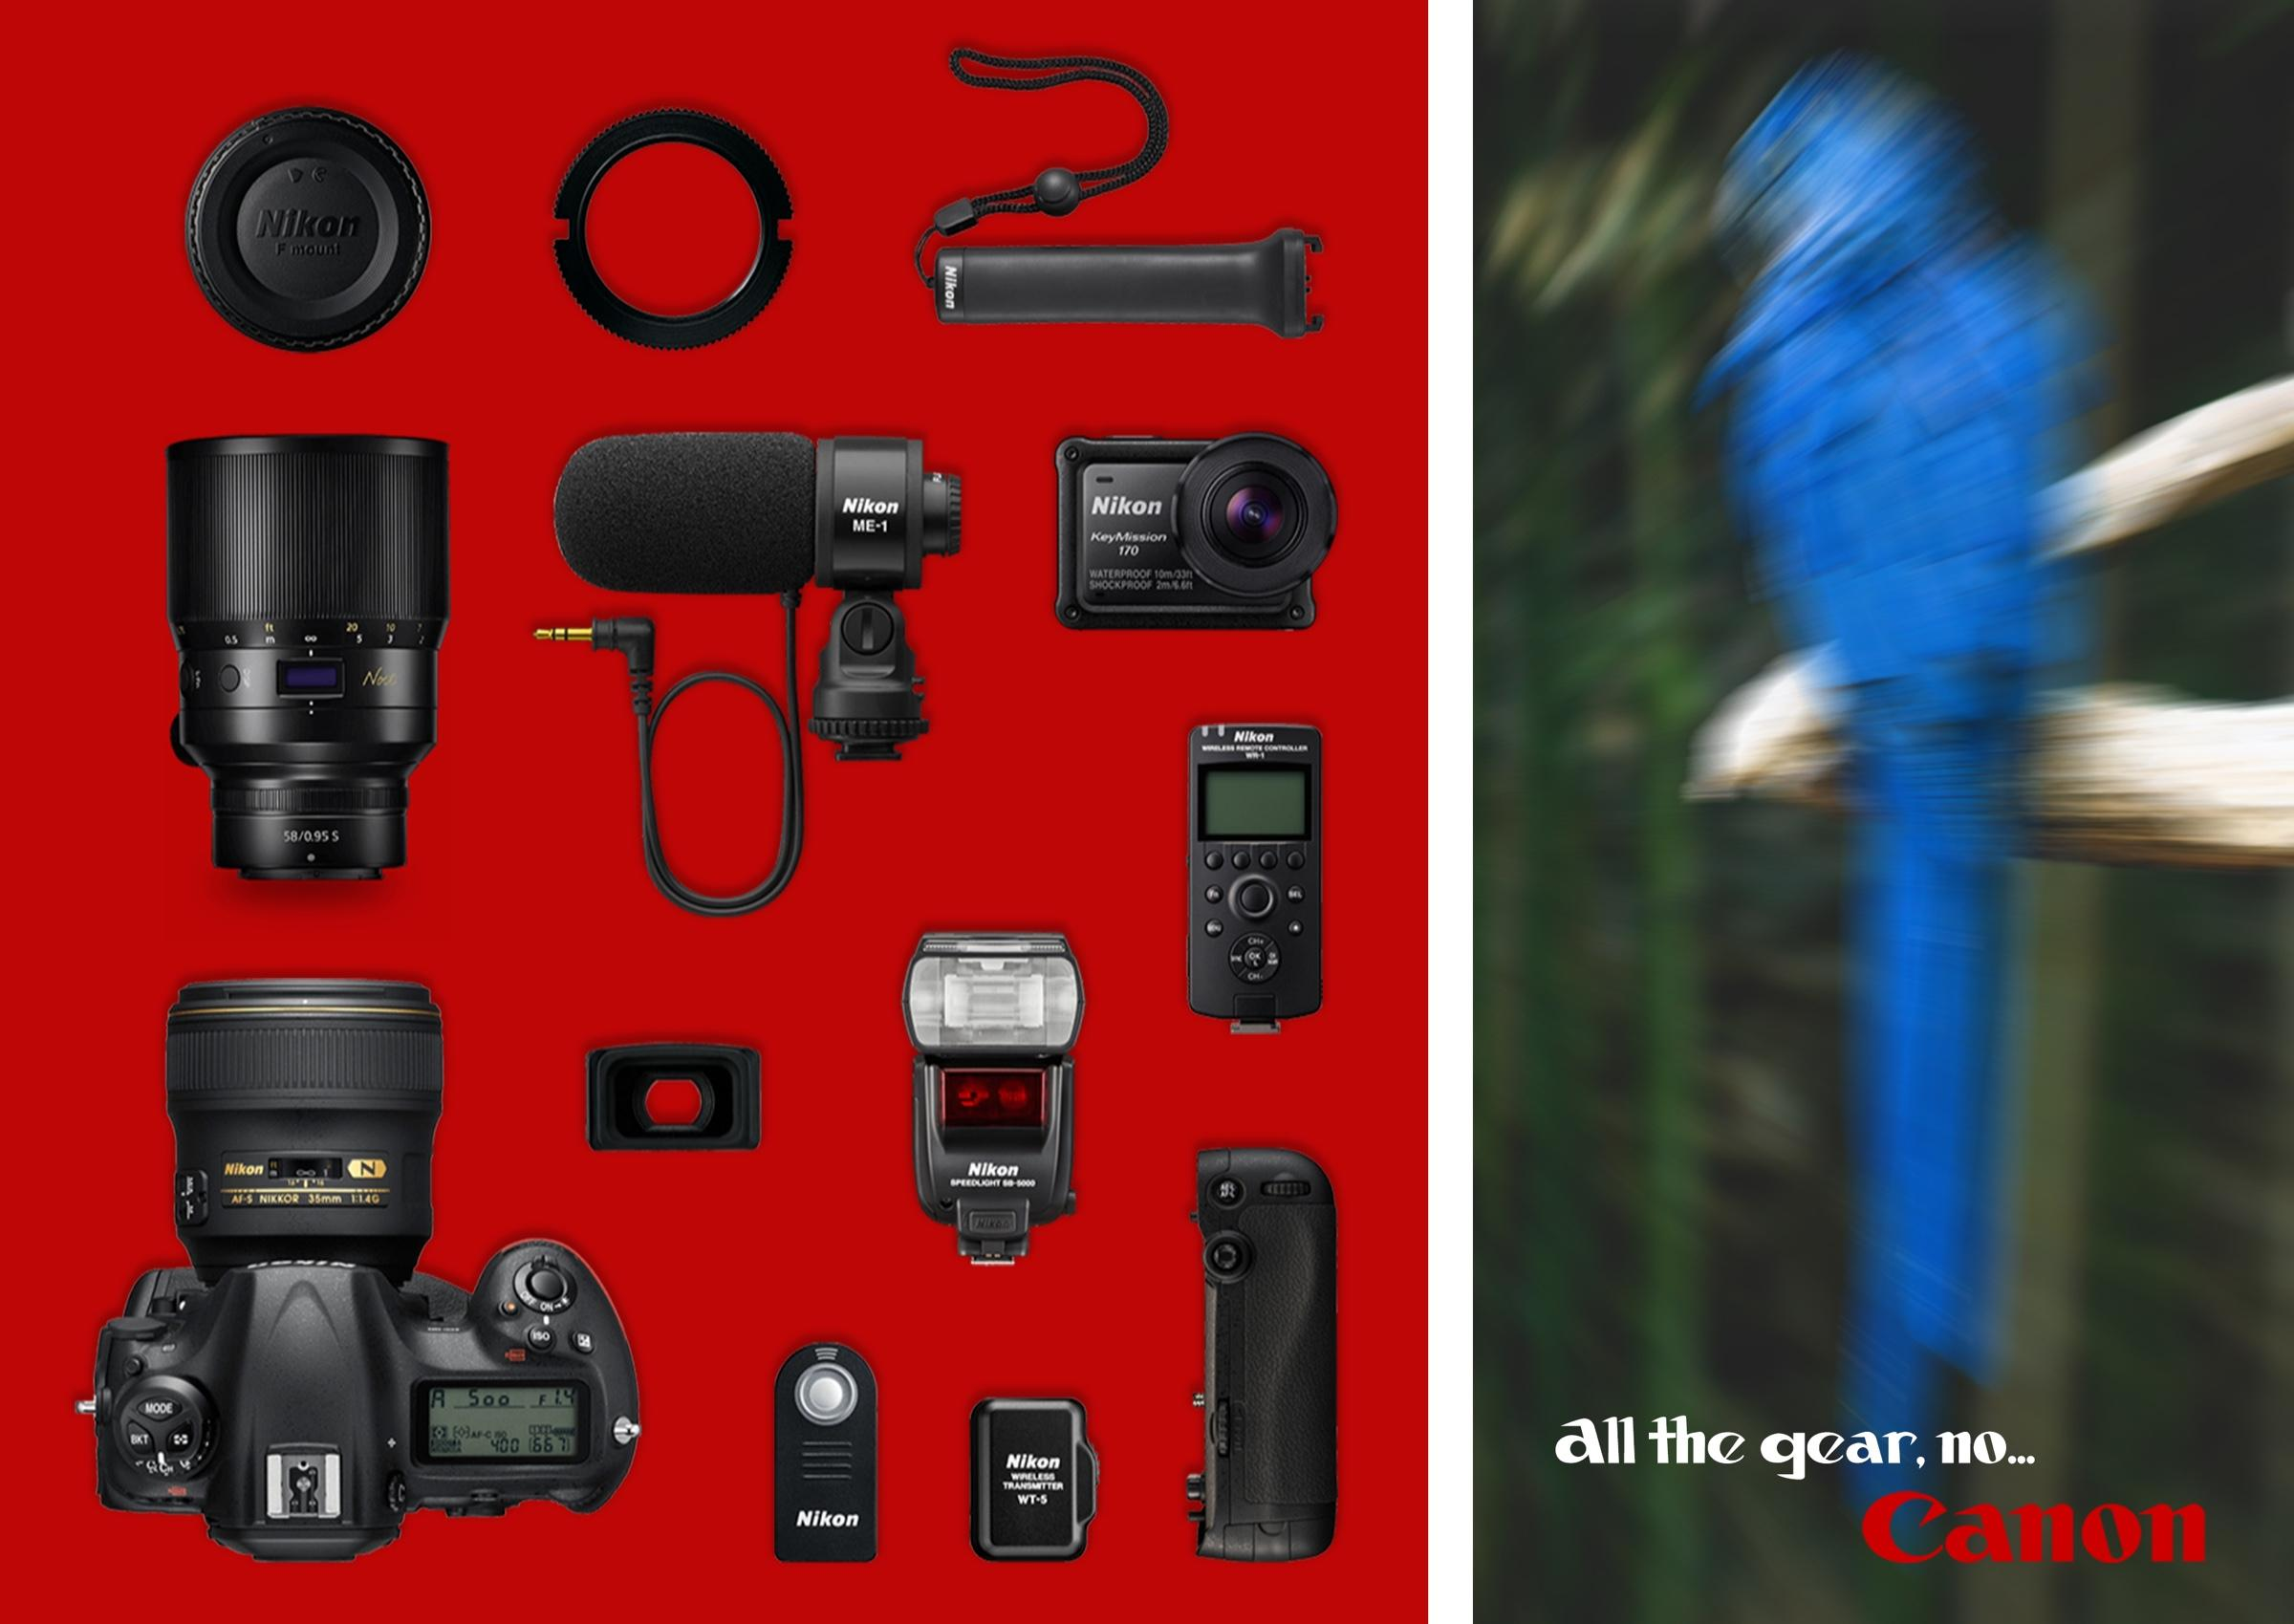 Canon Print Ad - All the gear, no Canon